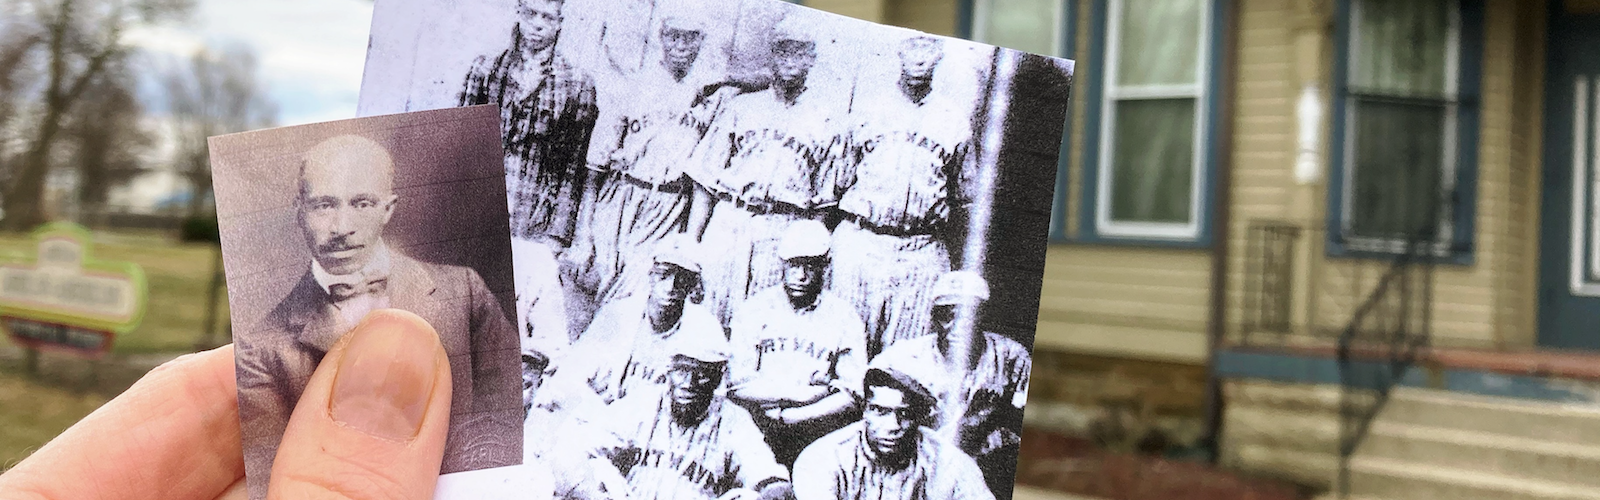 William E. Warfield and the Fort Wayne Colored Giants are history-makers in Fort Wayne.